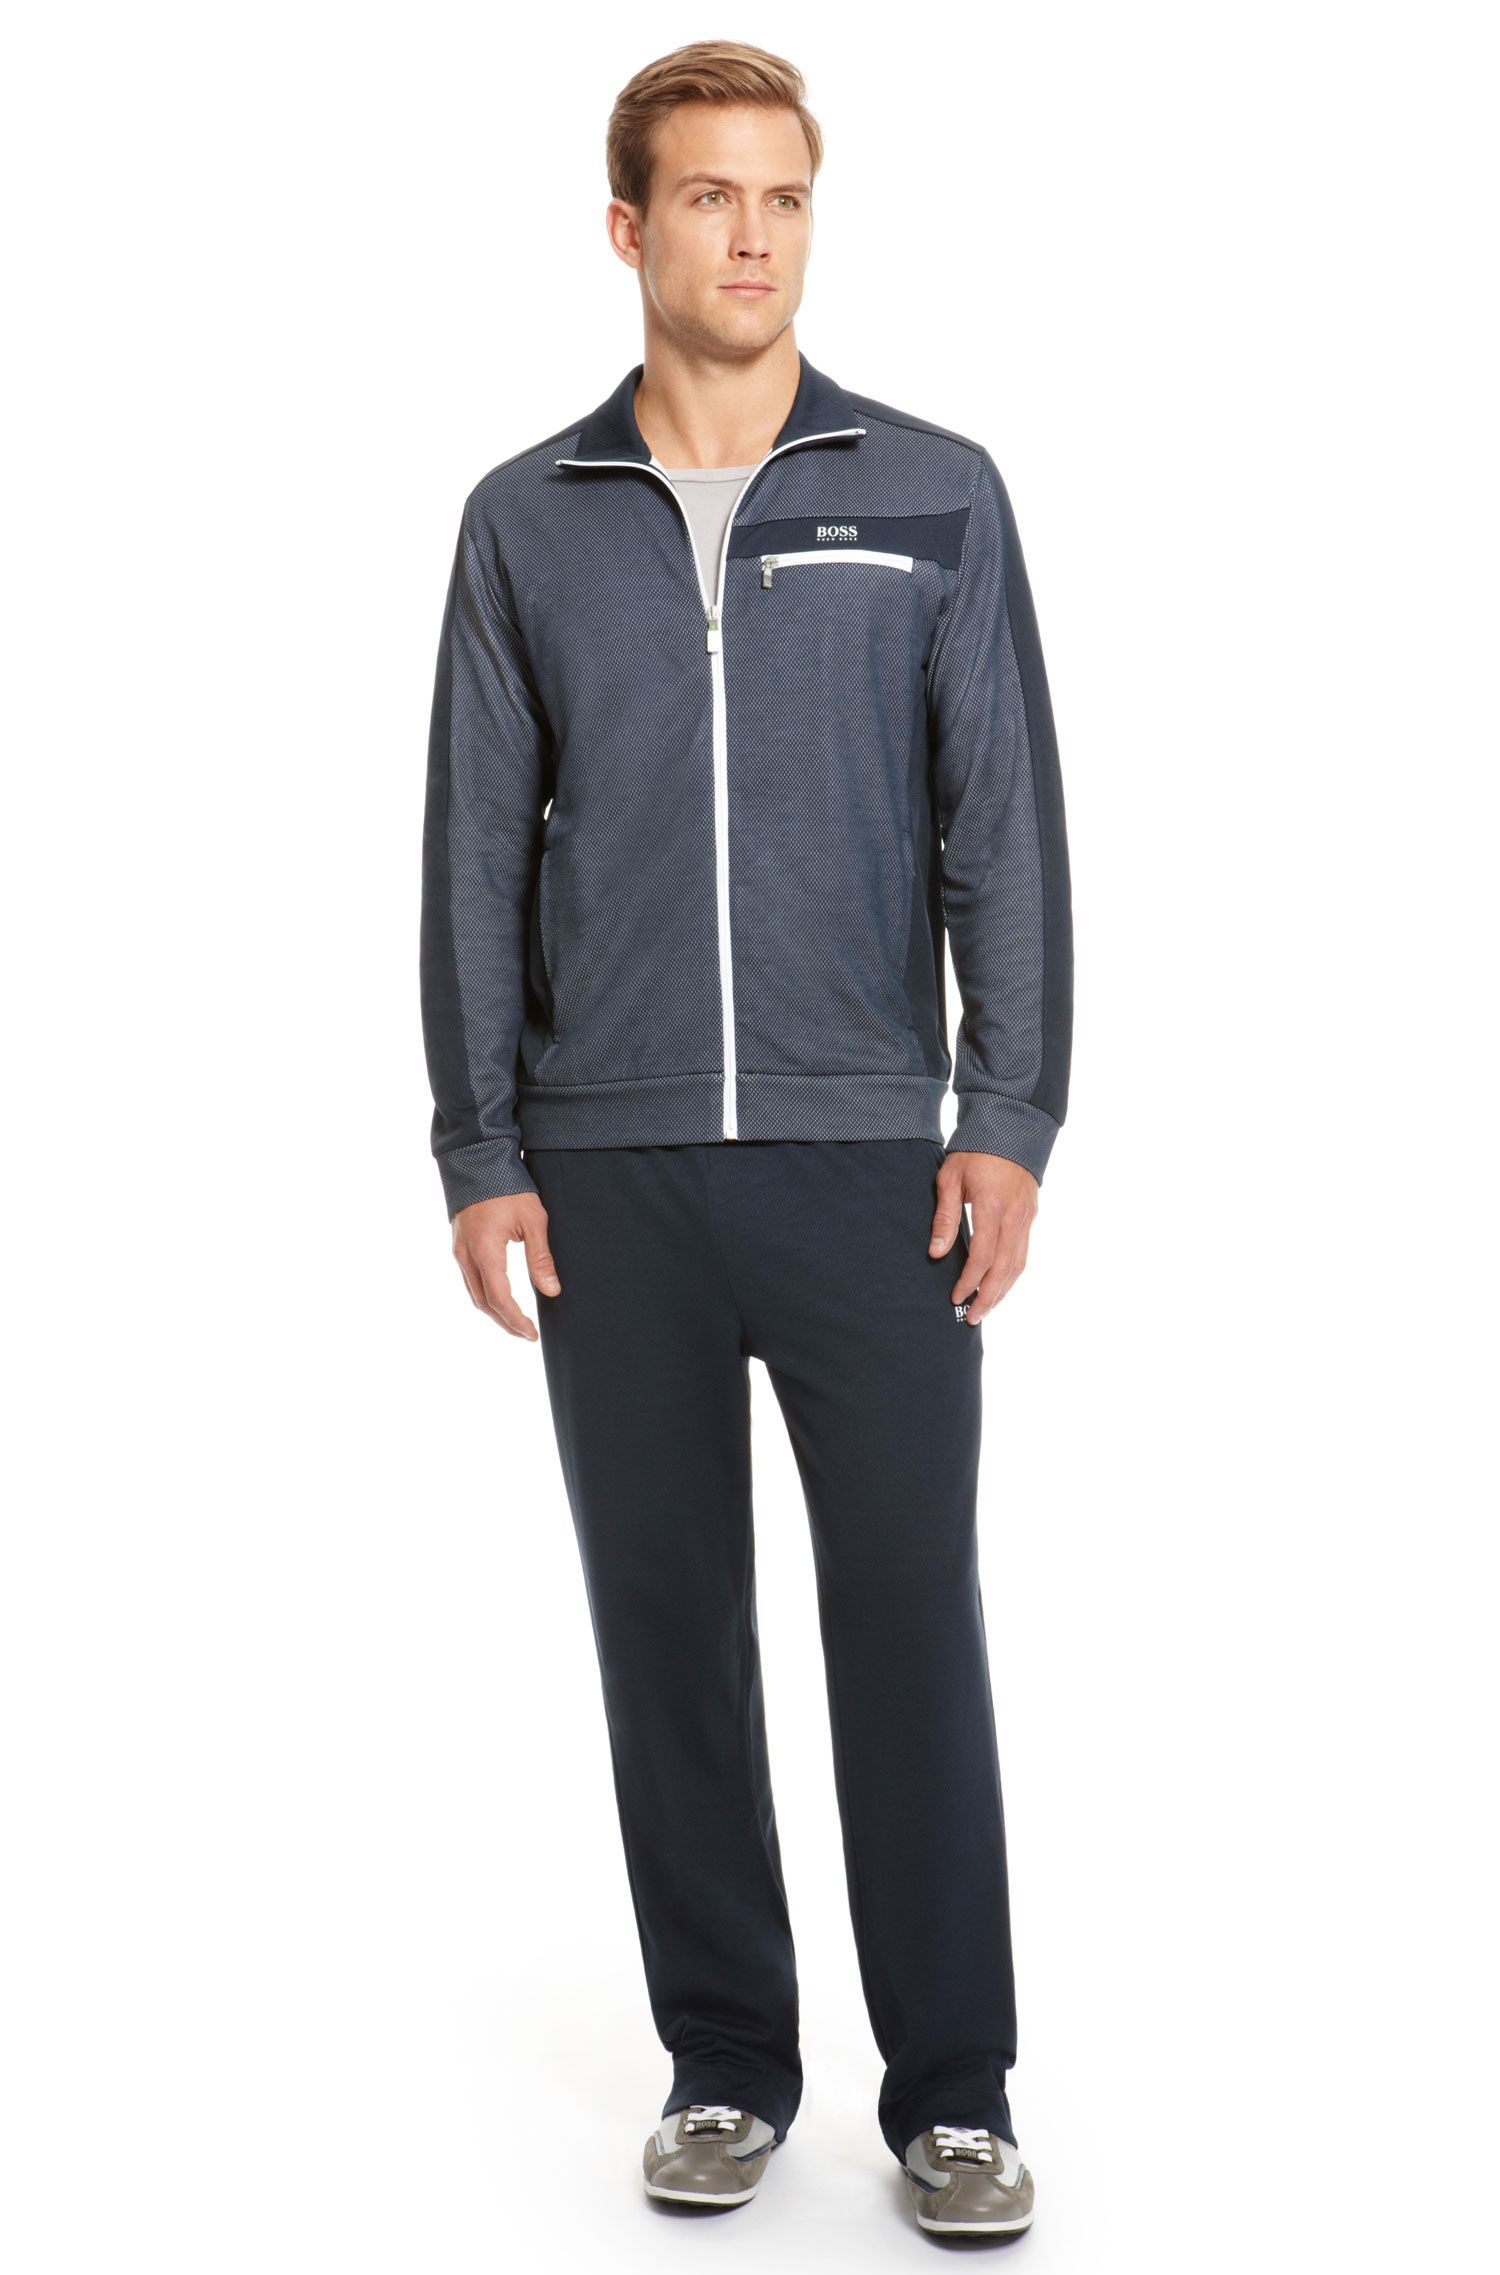 Cotton Blend Zip Up & Sweat Pants